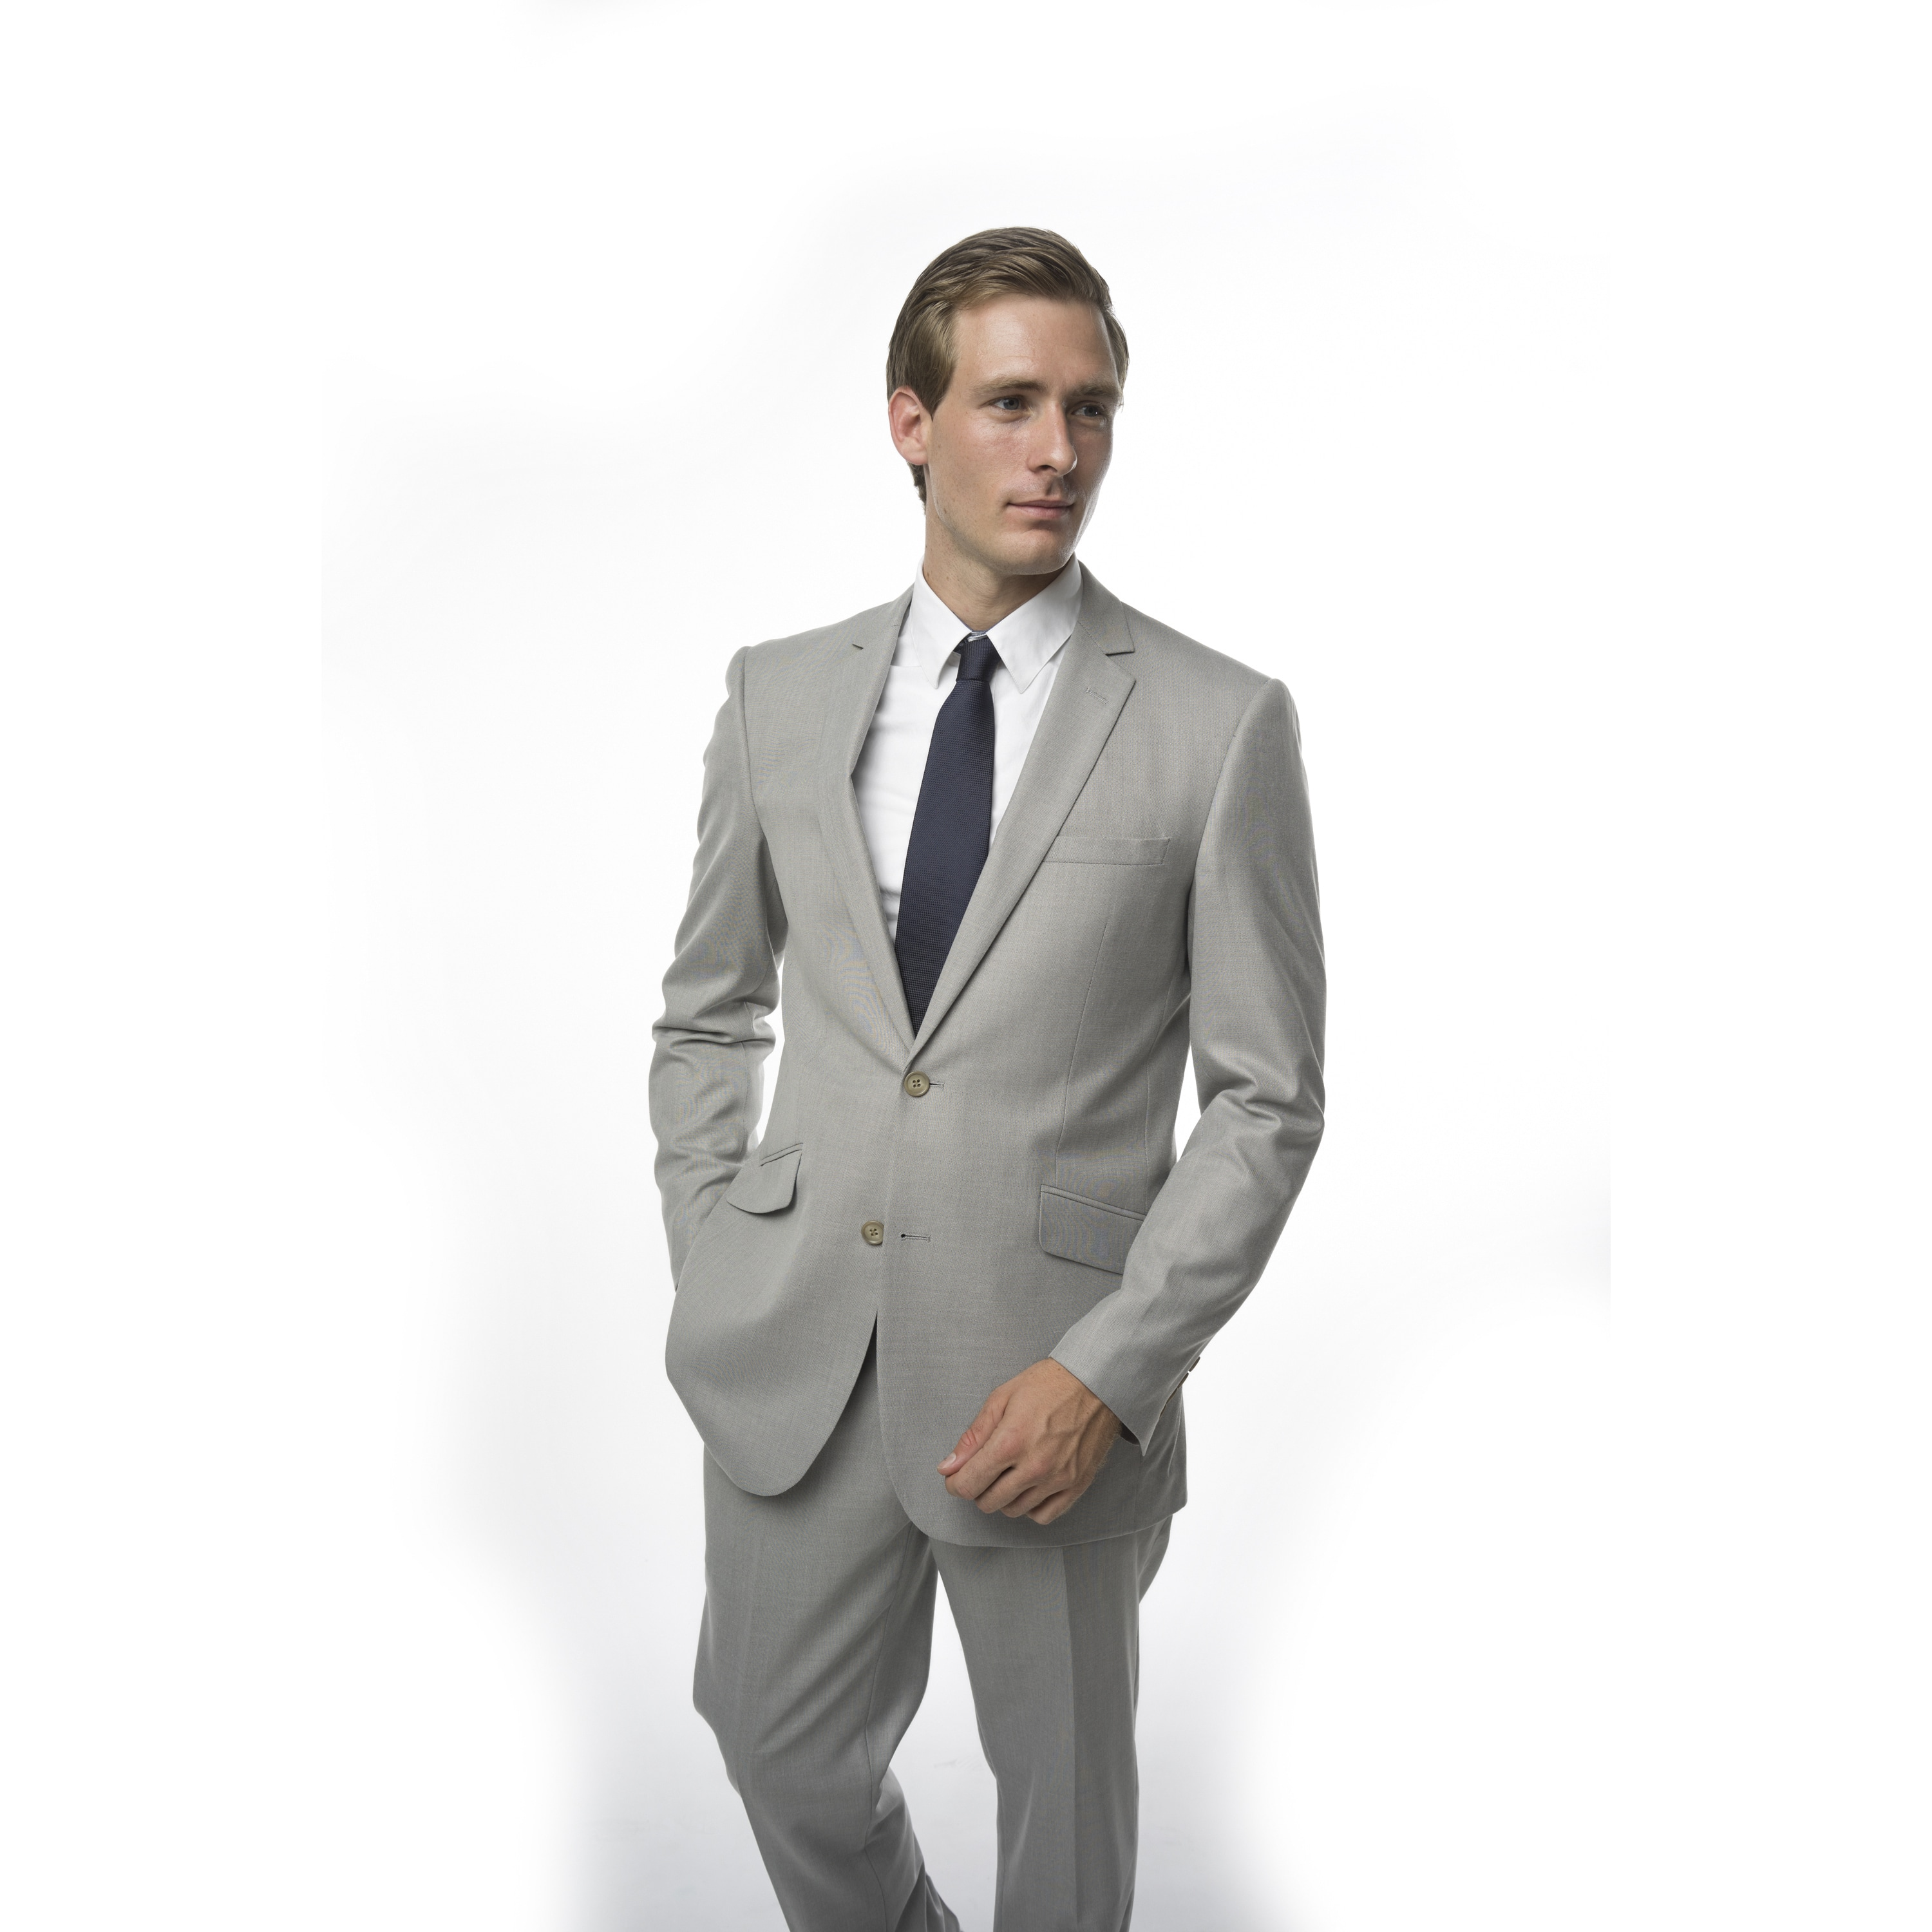 dress gray wool a suit bold silk print like tie light outfit blue with floral printed ties shirt striped week and of the color